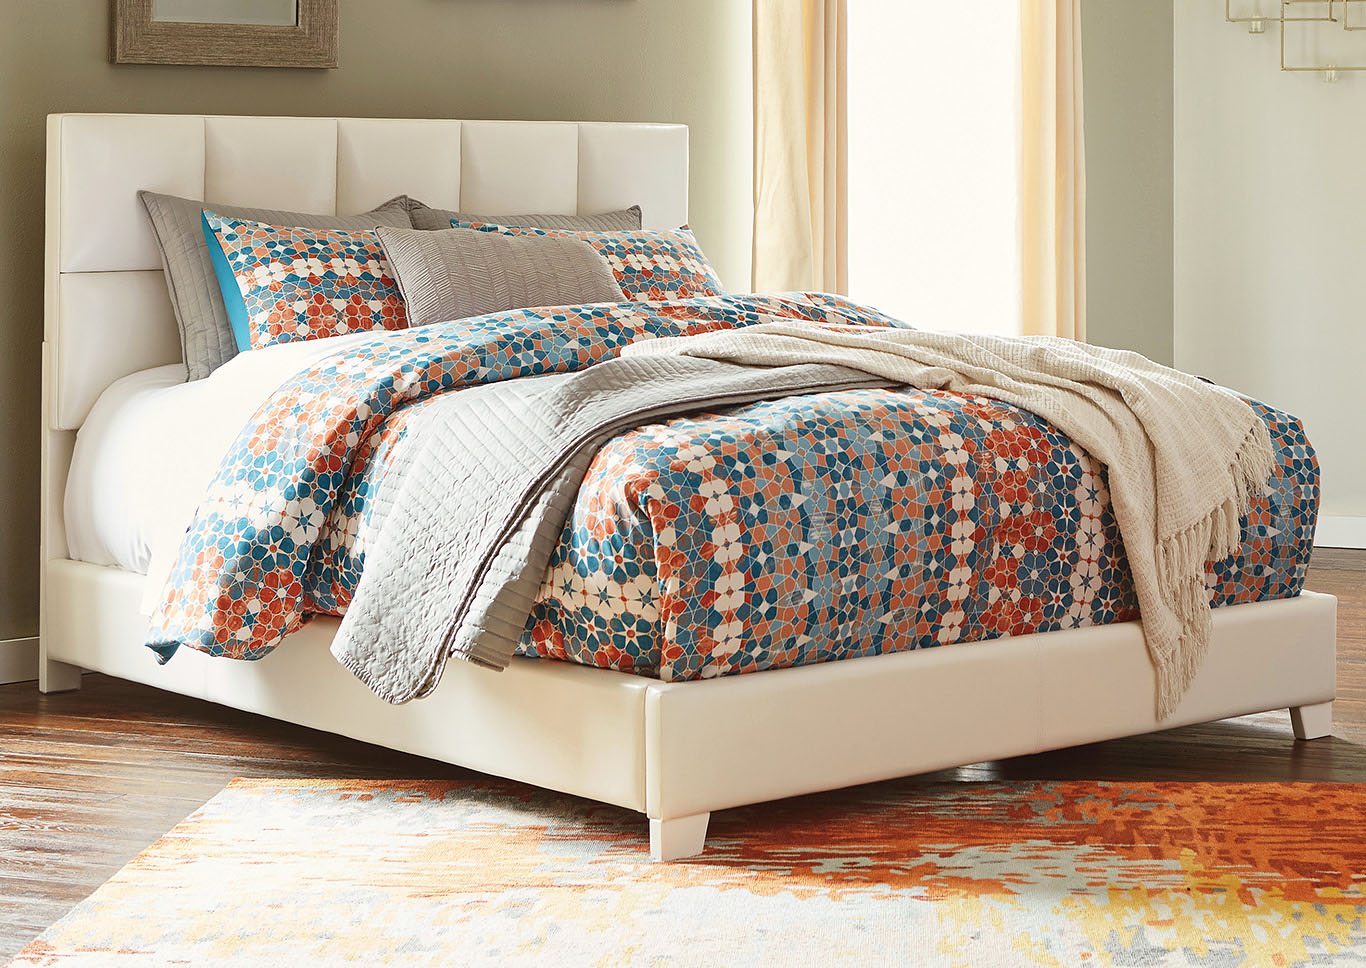 Contemporary Upholstered Beds Multi Queen Upholstered Bed,ABF Signature Design by Ashley